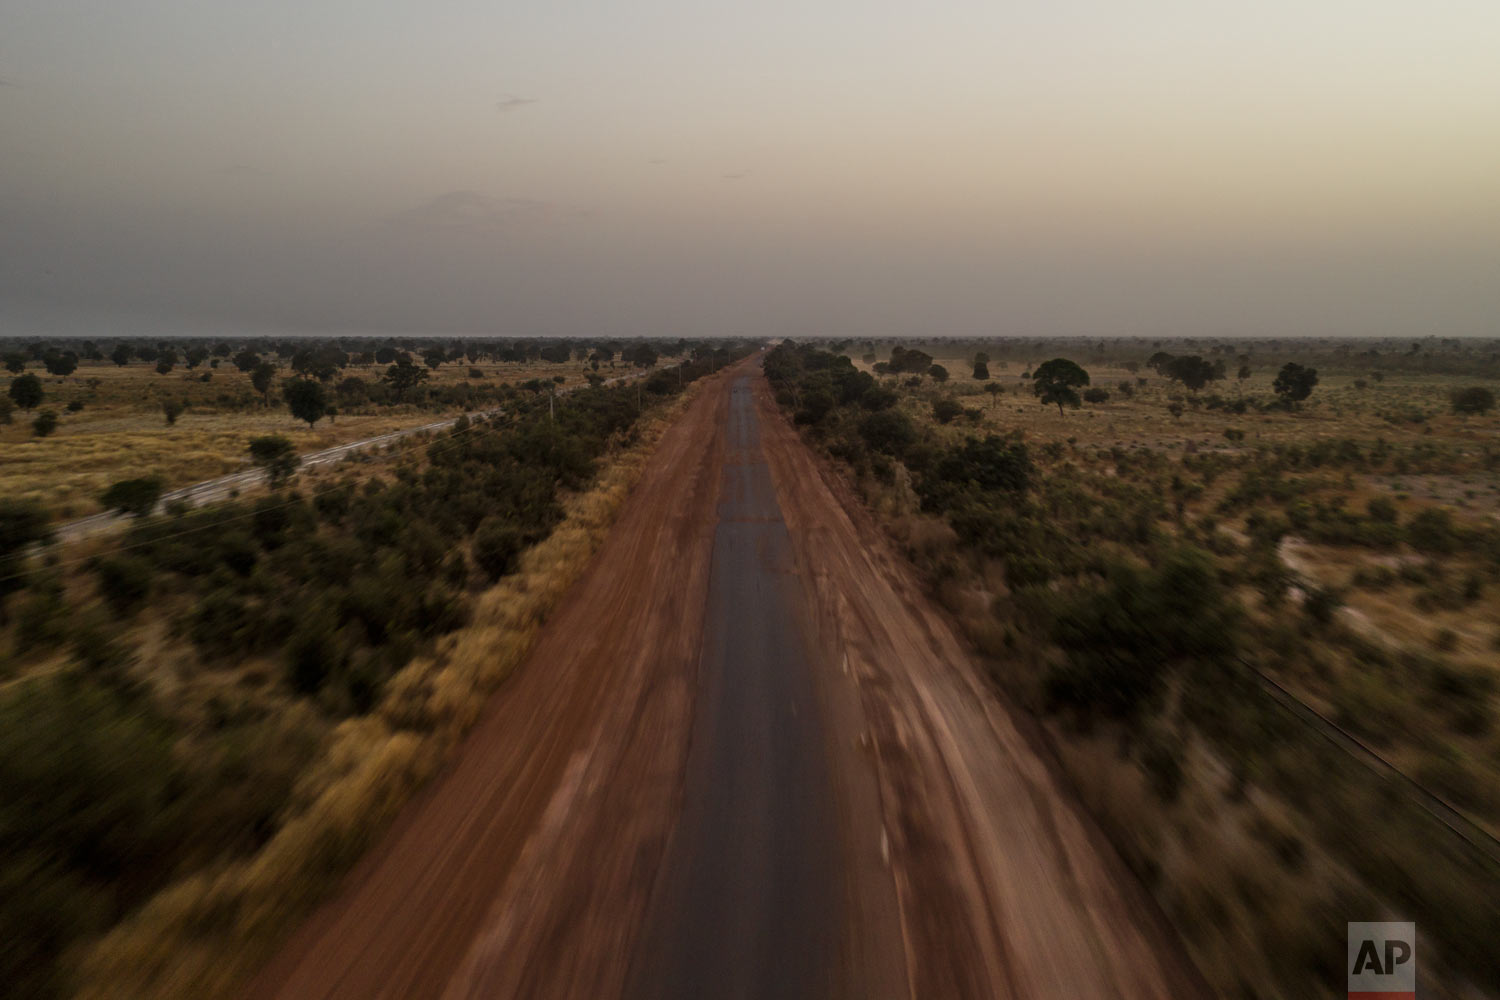 An aerial view of the road that connects Senegal to Mali is seen, Nov. 28, 2018, near Tambacounda, Senegal. (AP Photo/Felipe Dana)